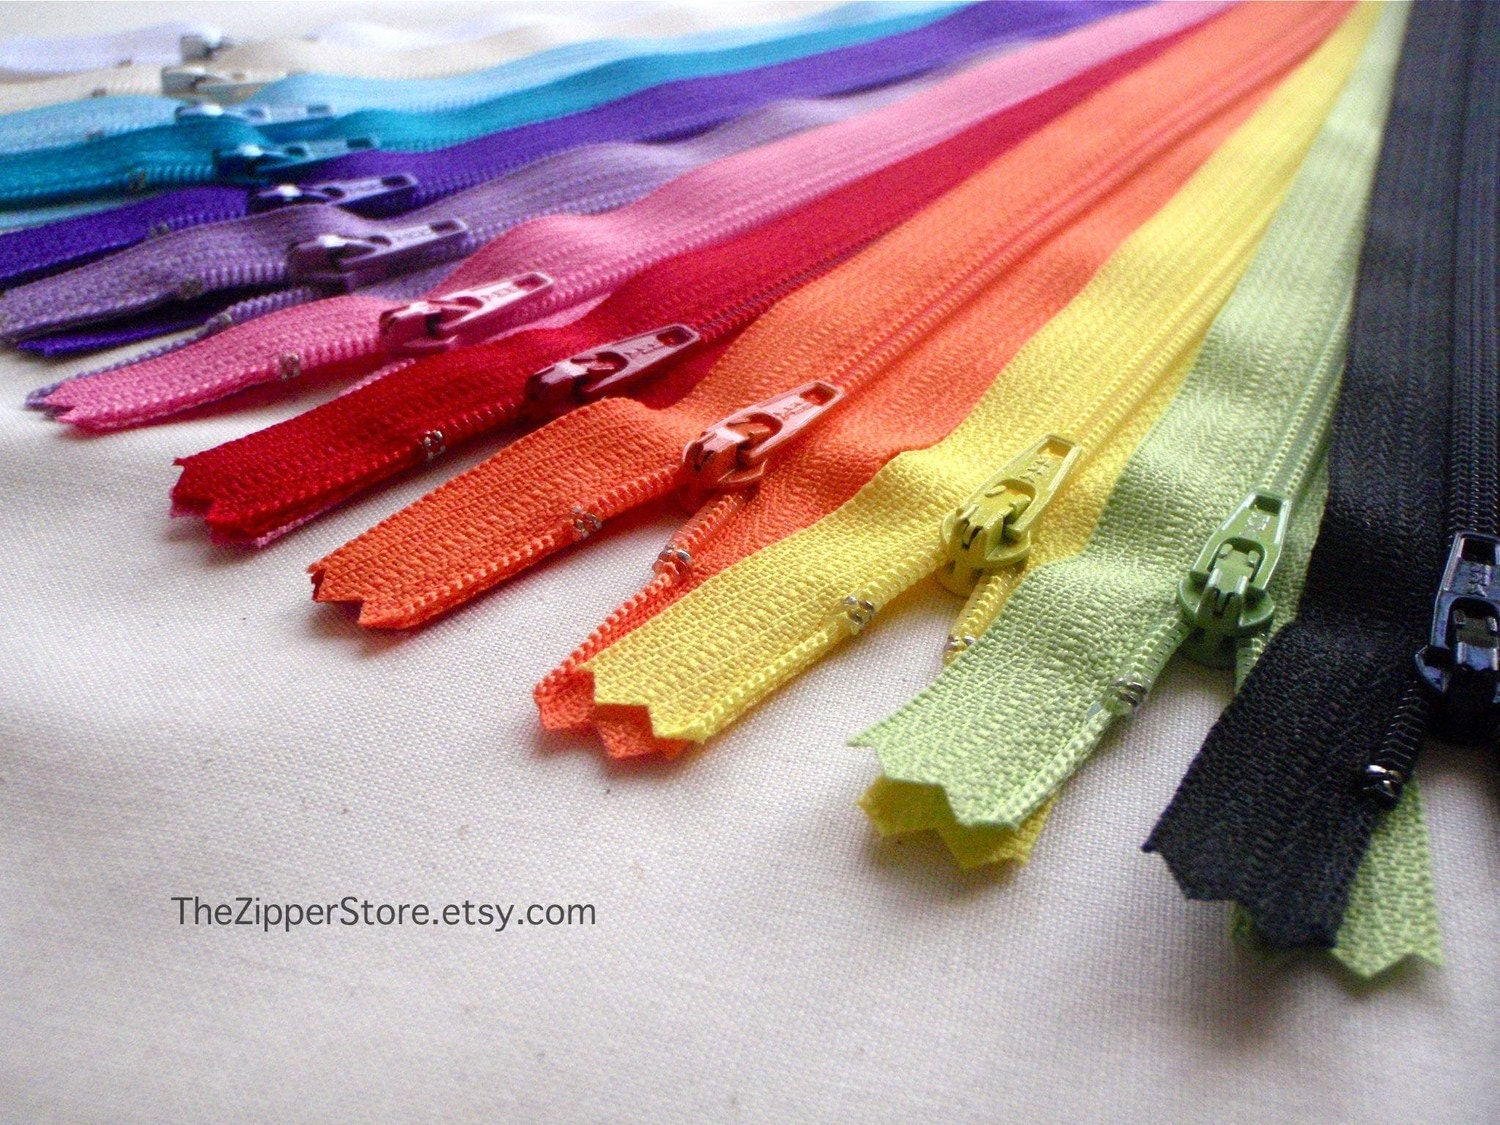 100 Wholesale Bulk Pack of 9 inch YKK Zippers - YOUR CHOICE